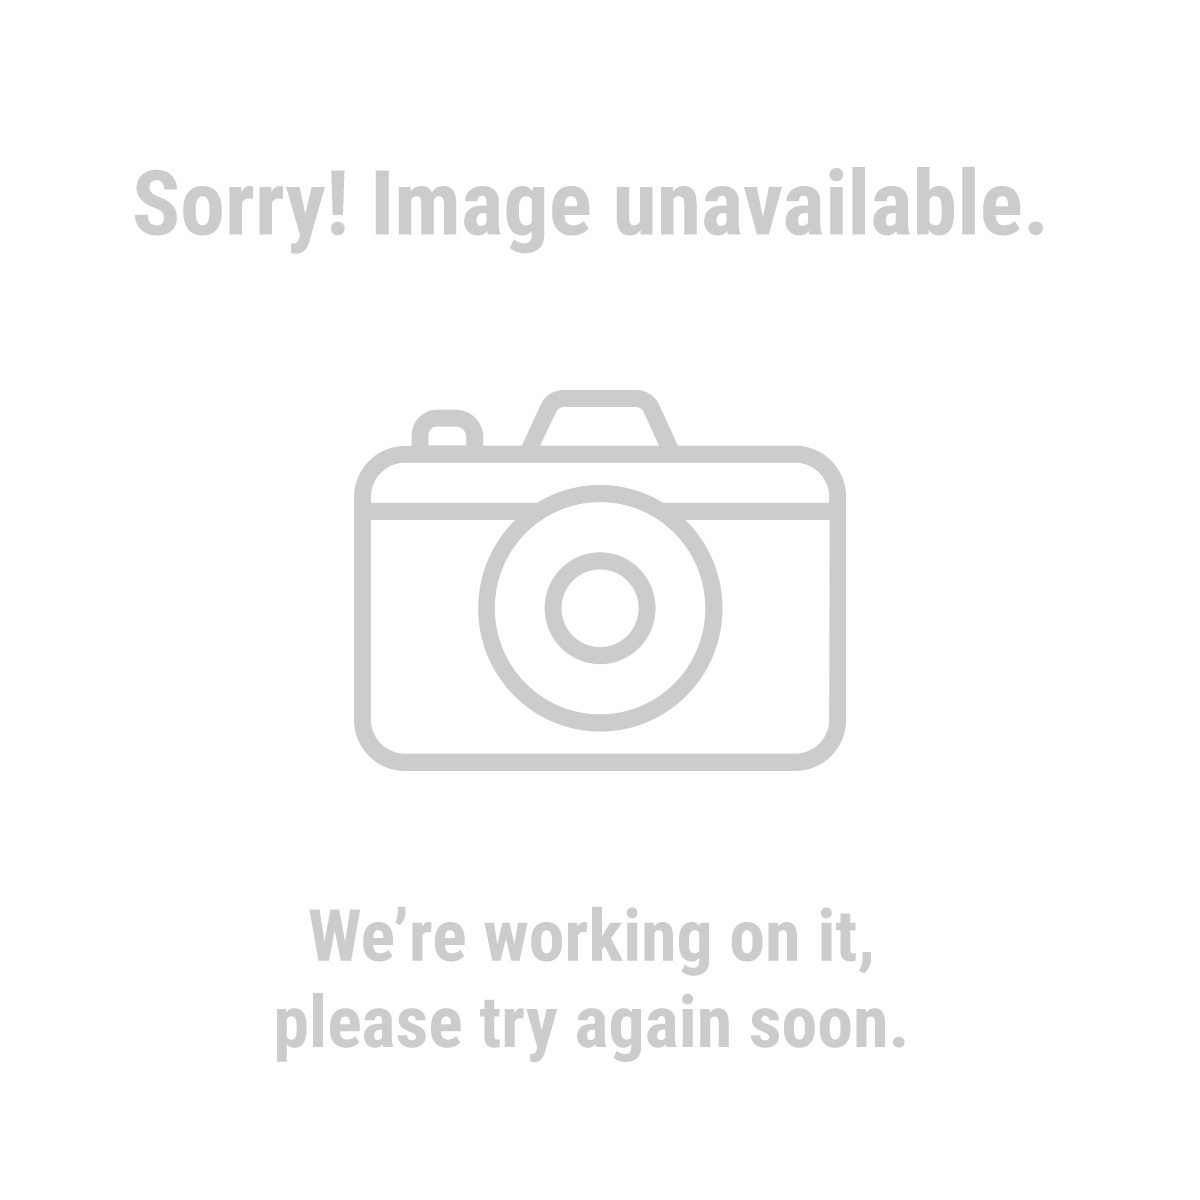 Badland Winches 61256 12000 lb. Off-Road Vehicle Electric Winch with Automatic Load-Holding Brake